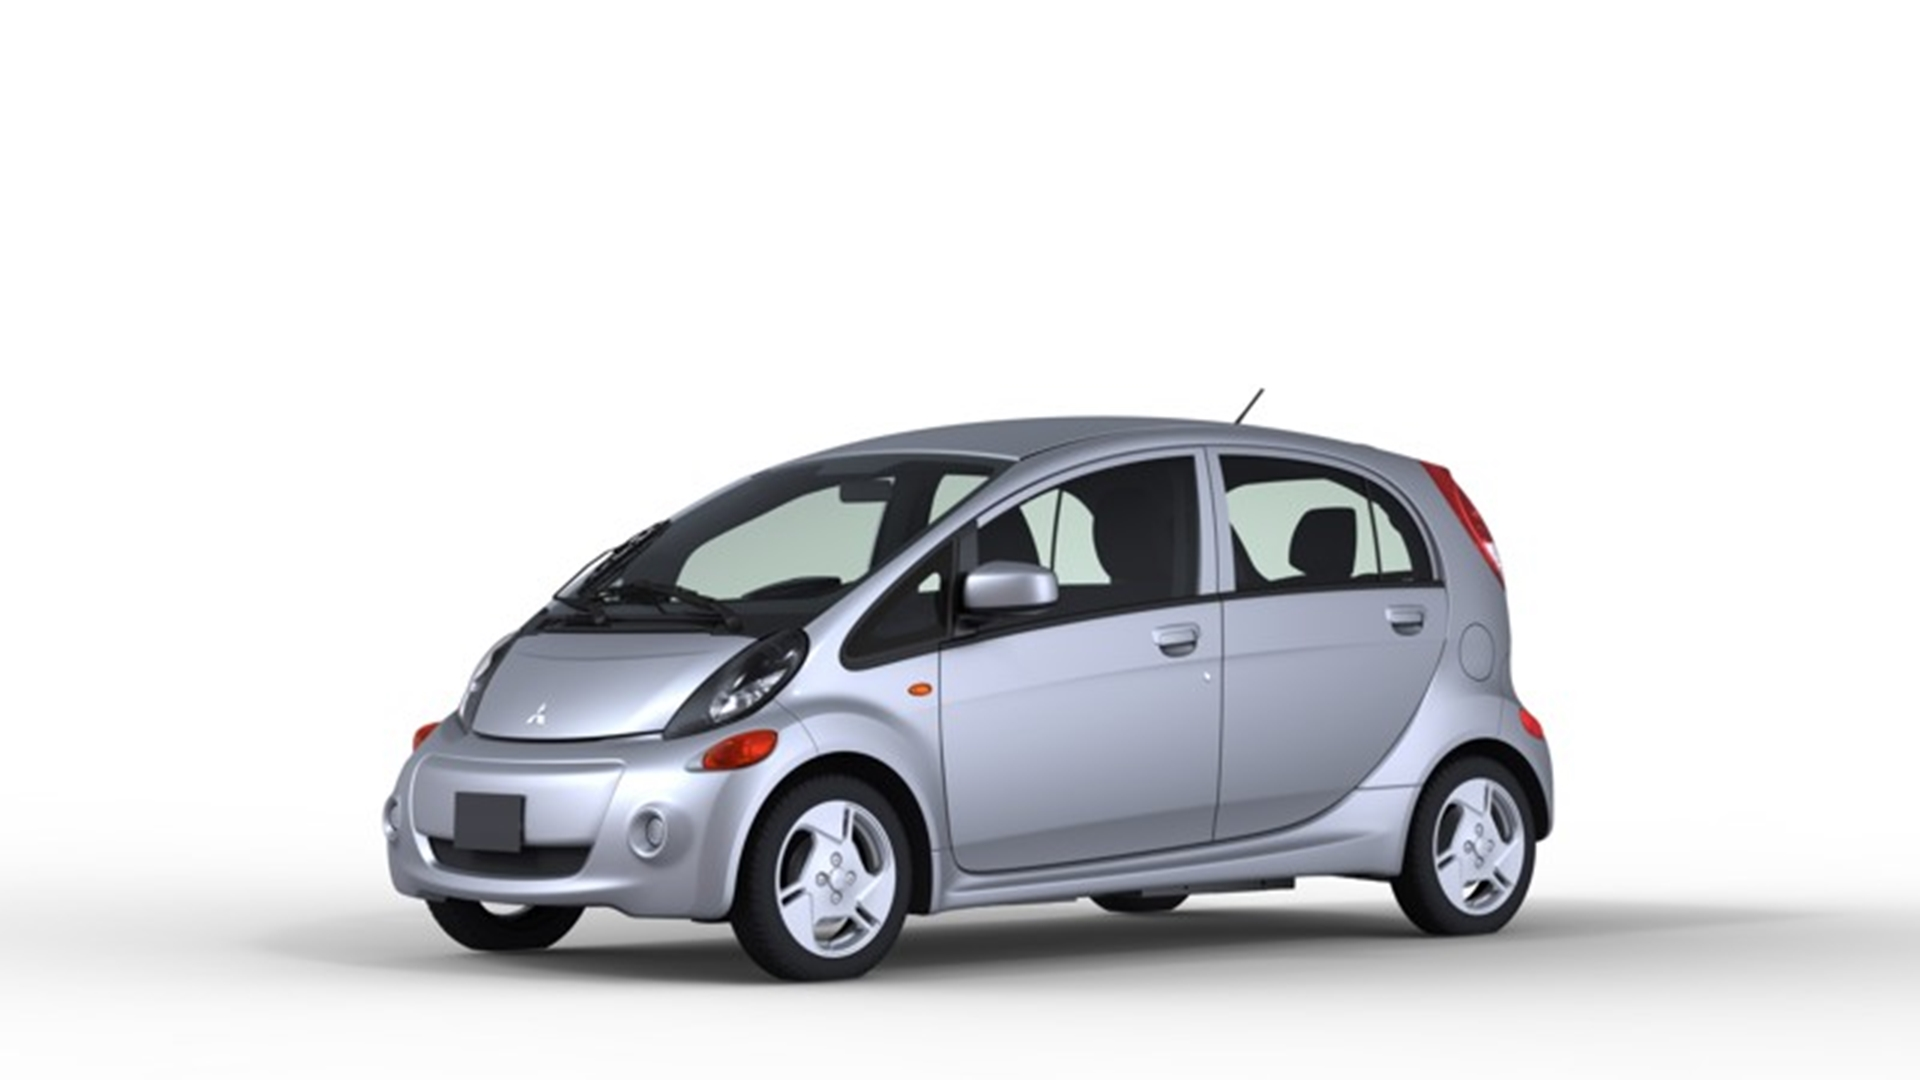 Noth American version of the i-MiEV